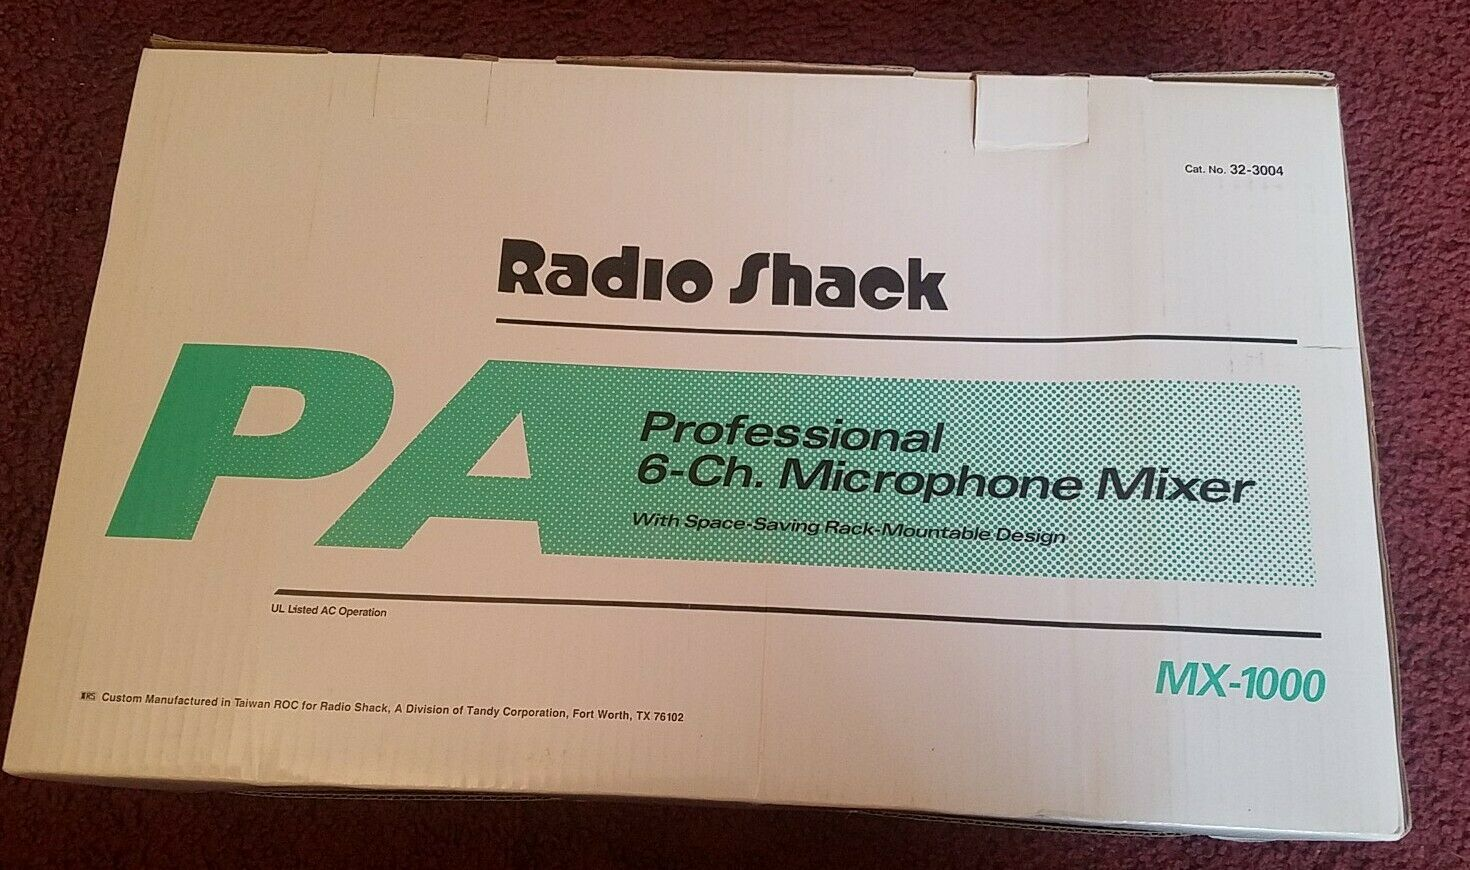 Radio Shack MX-1000 6-Channel Microphone Mixer - Used  NEW IN BOX . Buy it now for 59.95